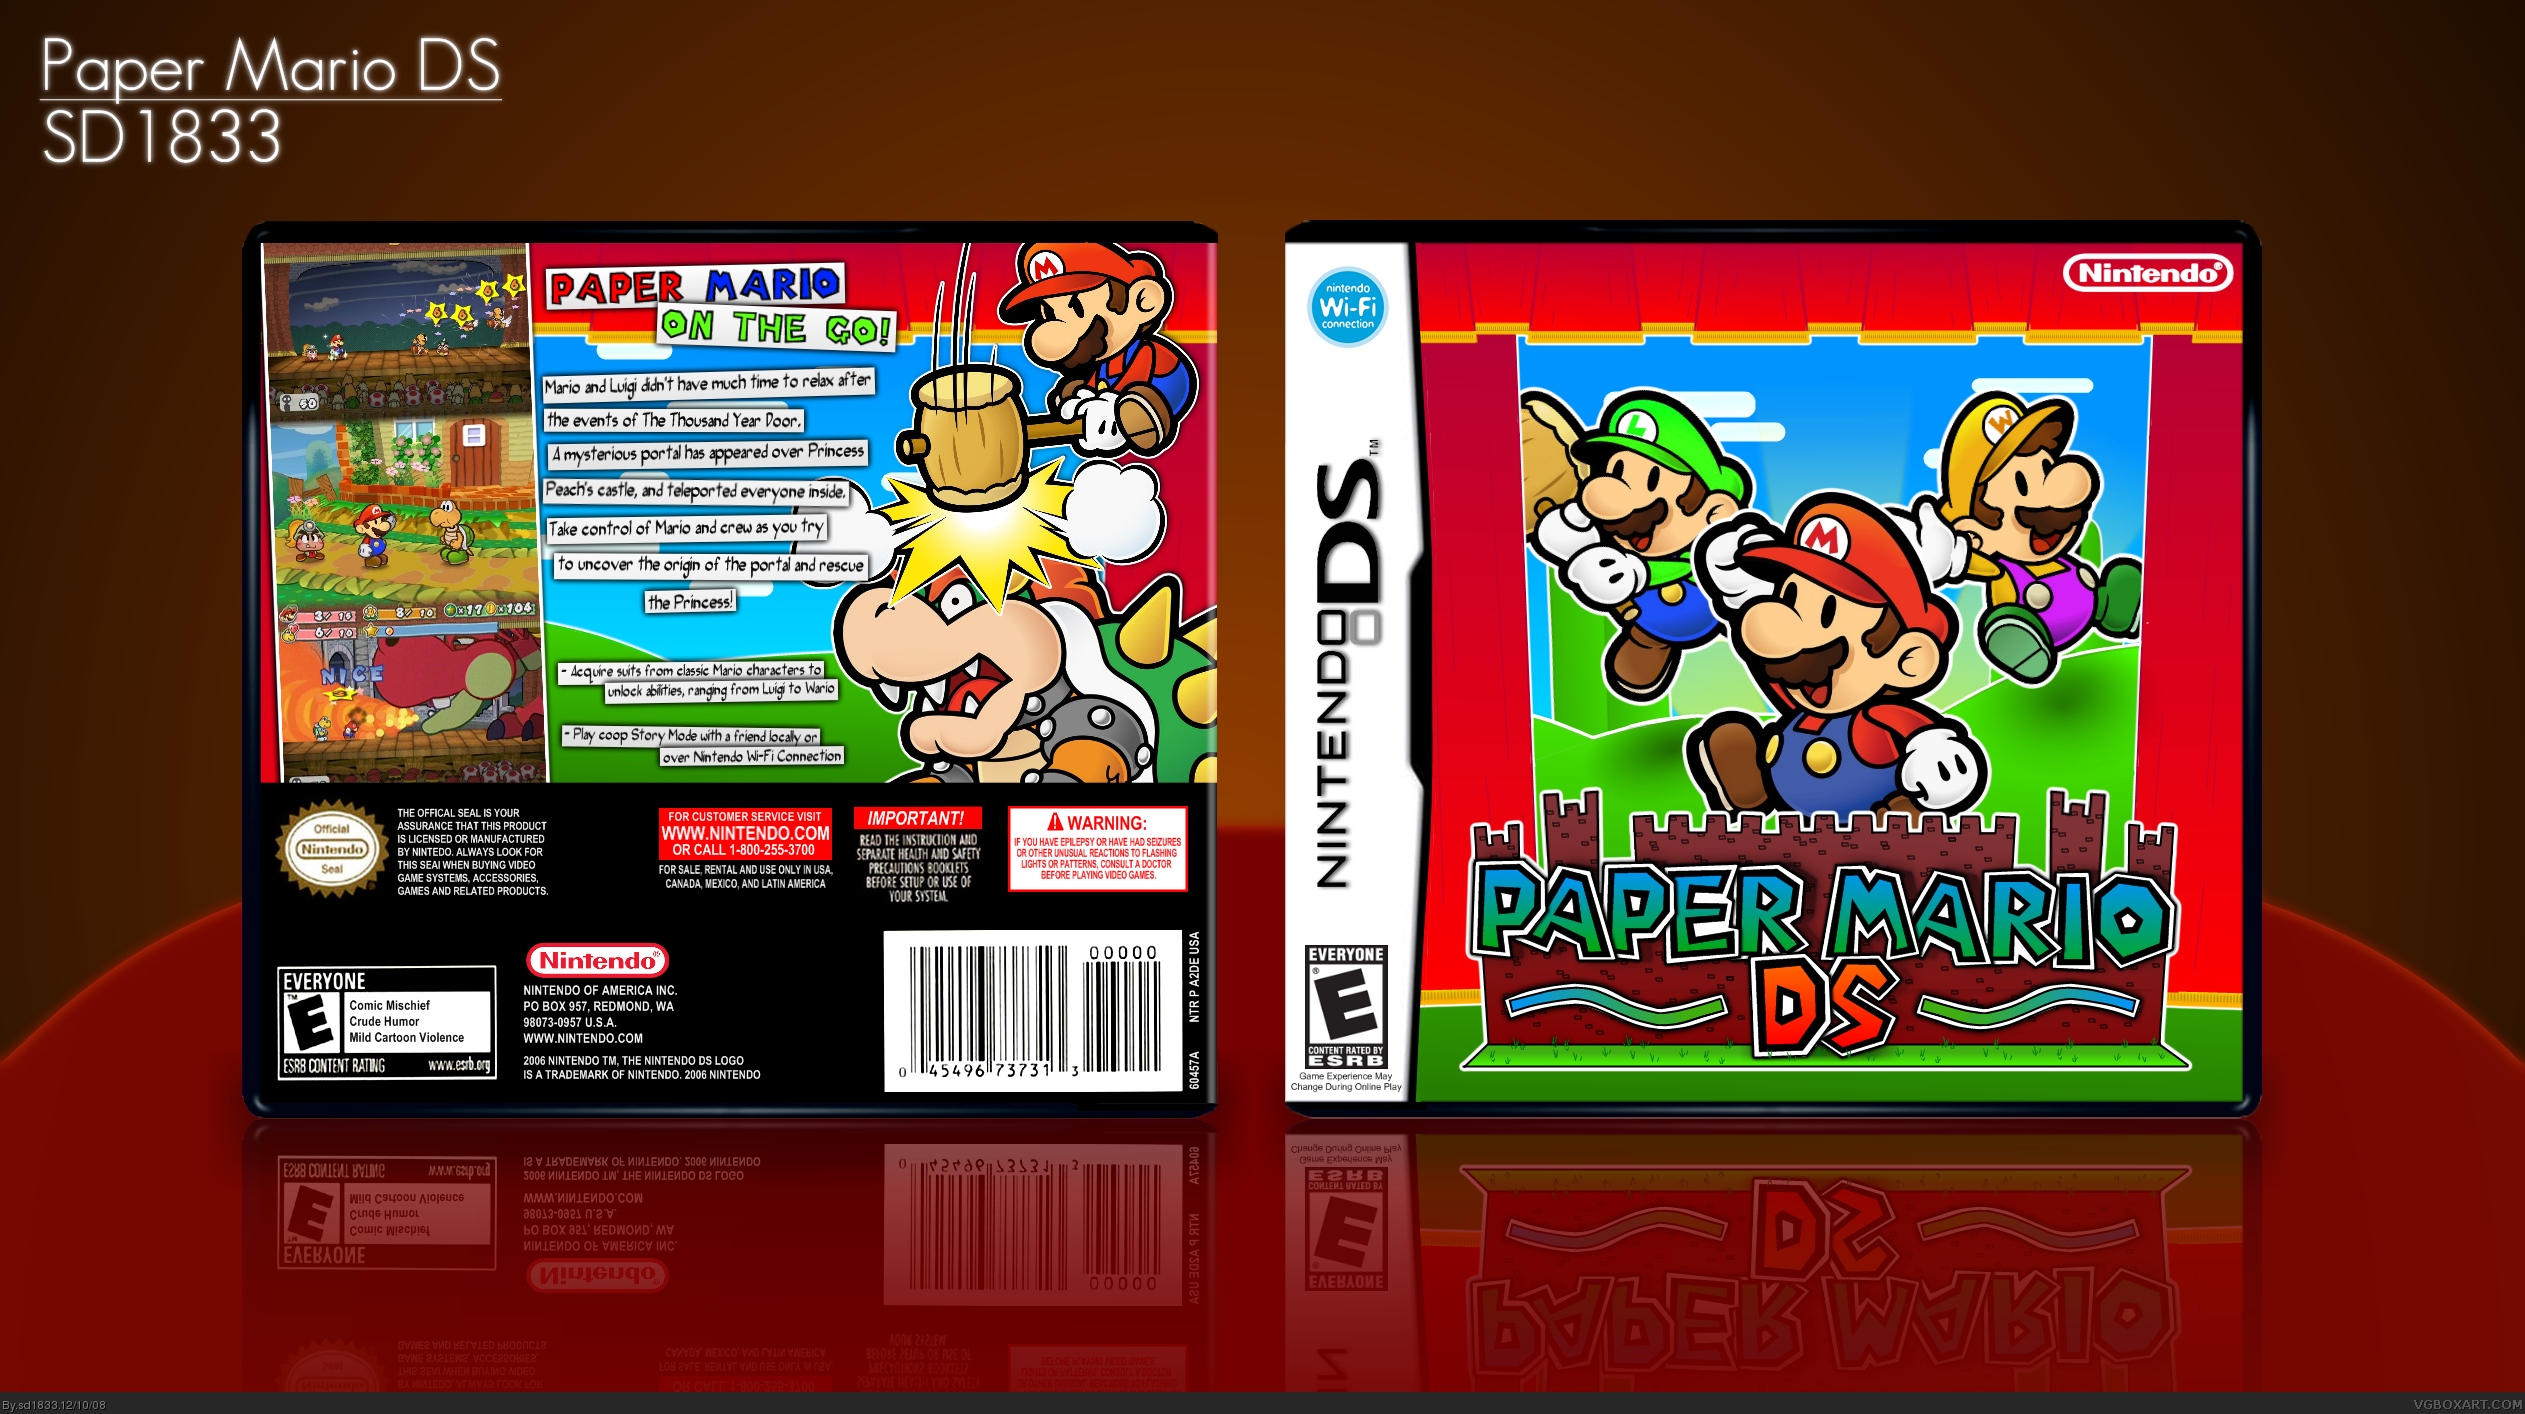 Paper Mario Ds Nintendo Ds Box Art Cover By Sd1833